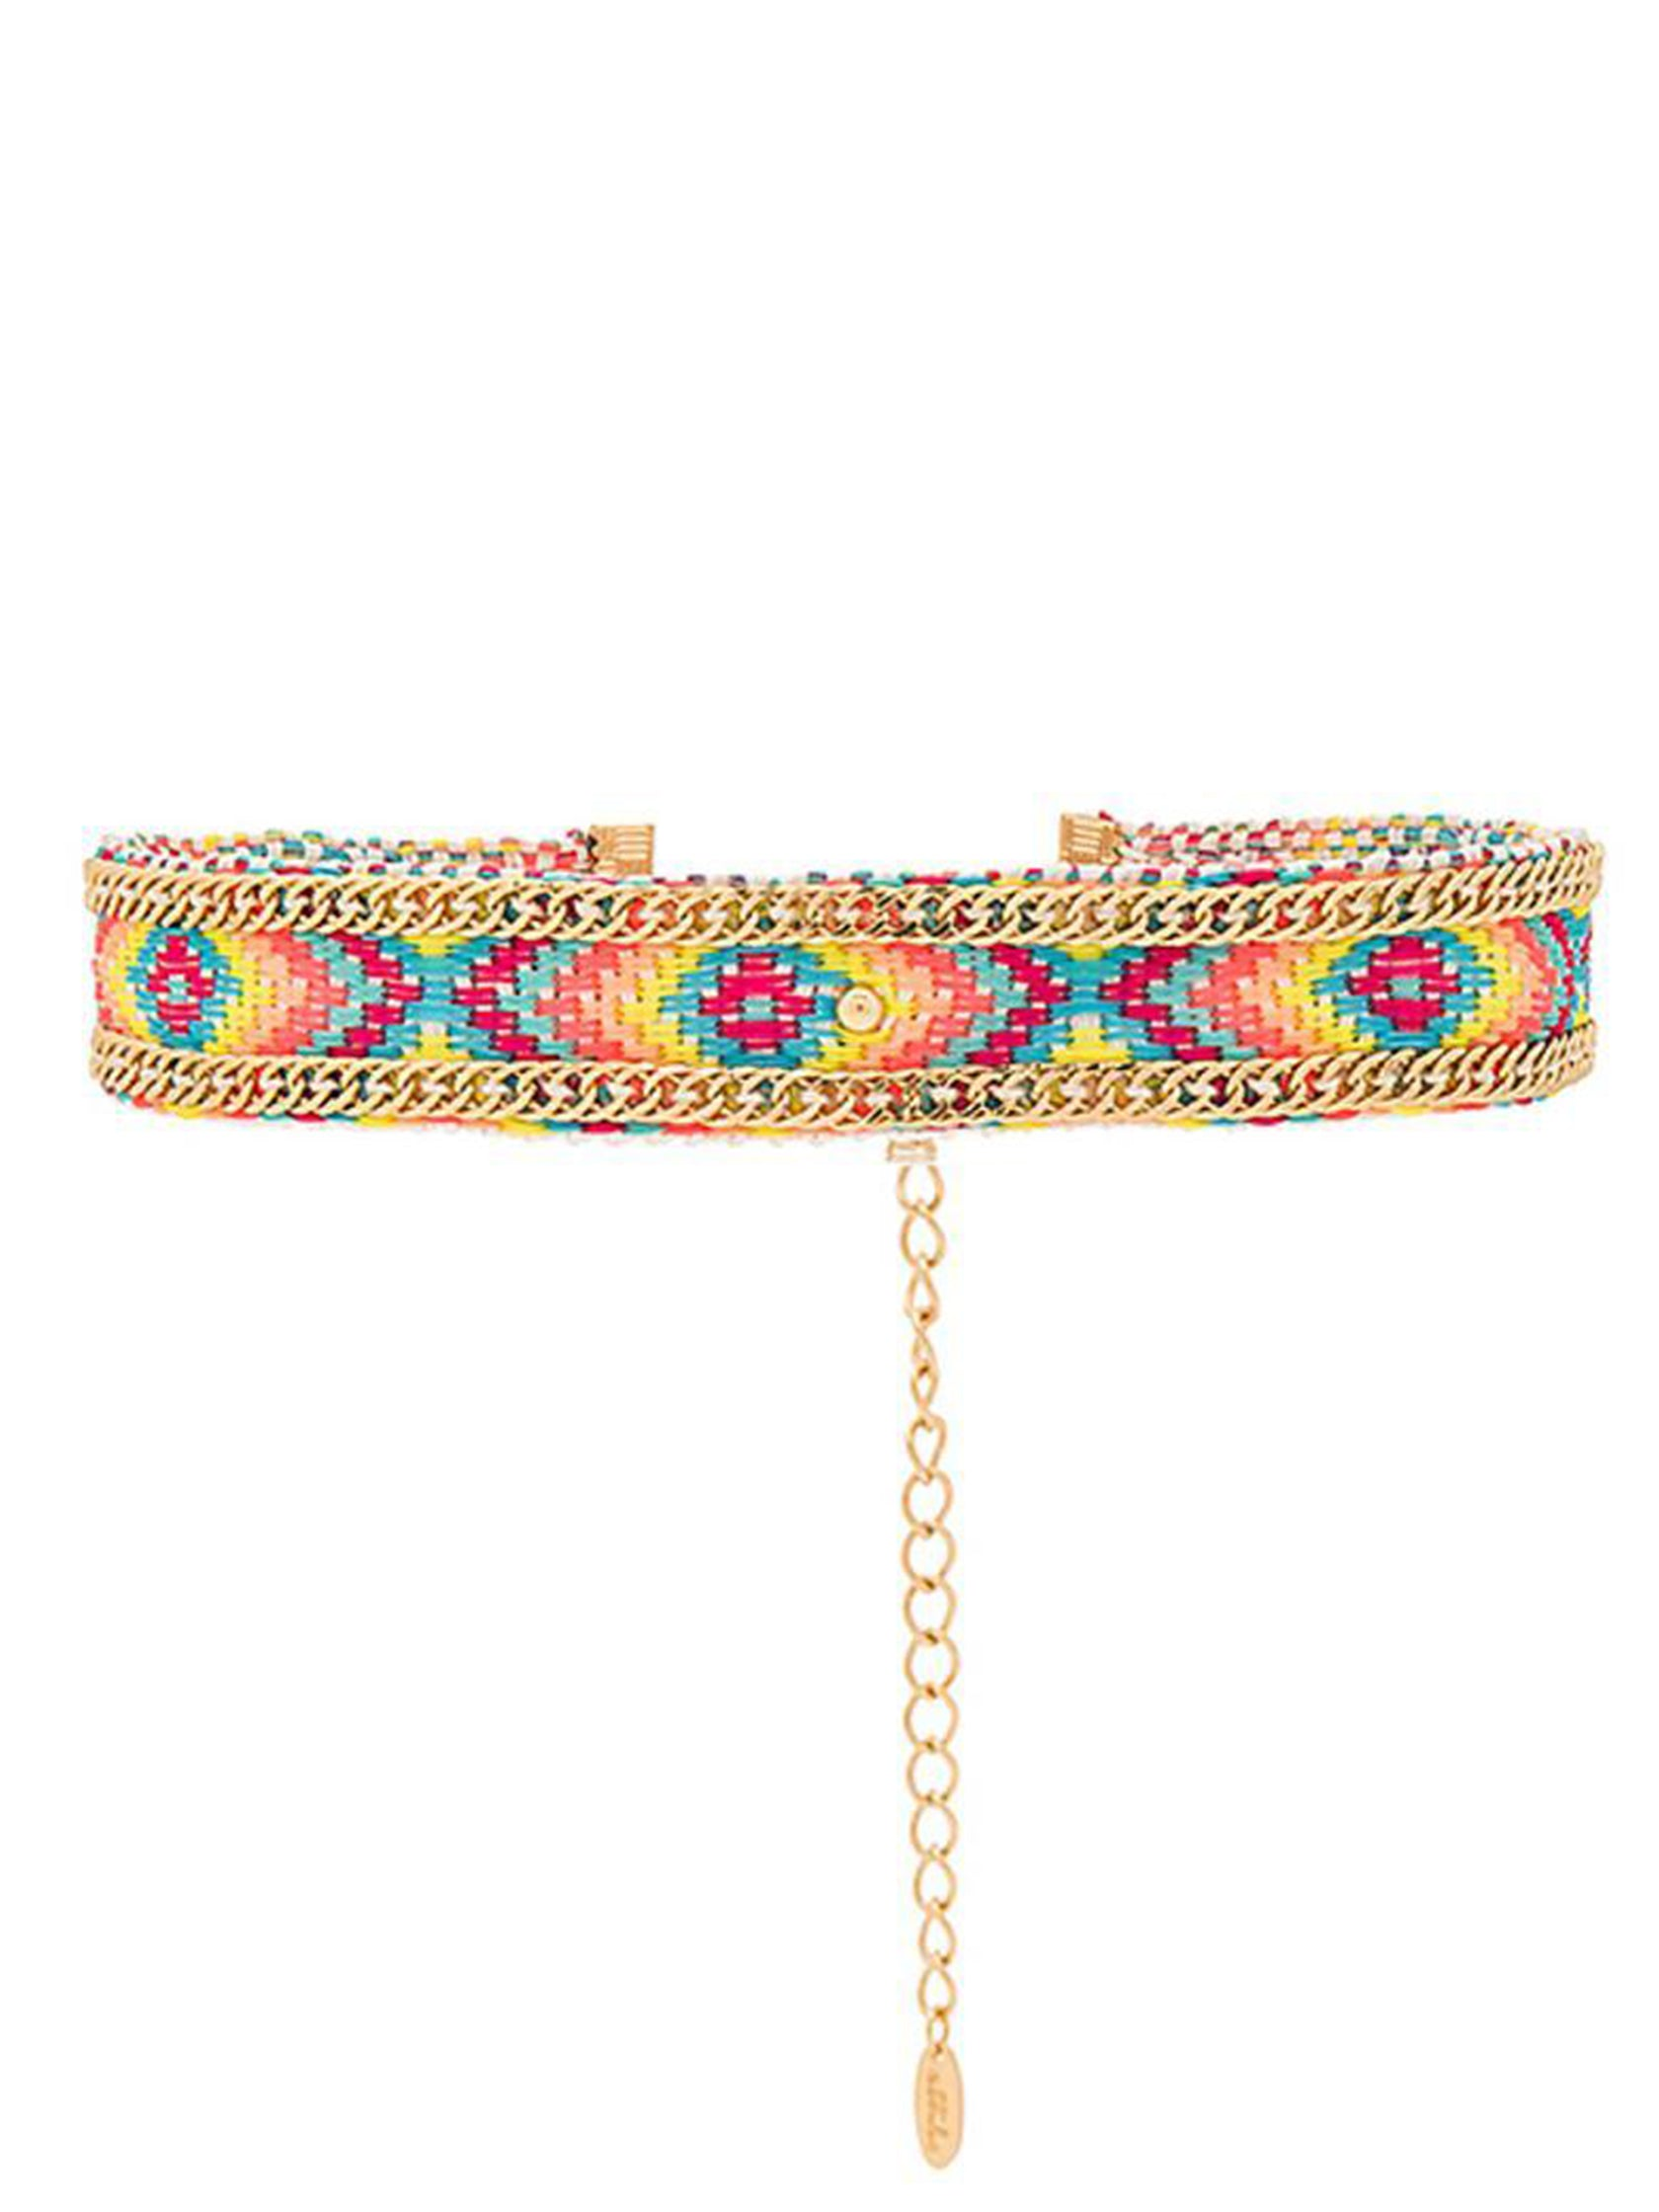 Women outfit in a choker rental from Ettika called Rainbow Gypsy Friendship Choker